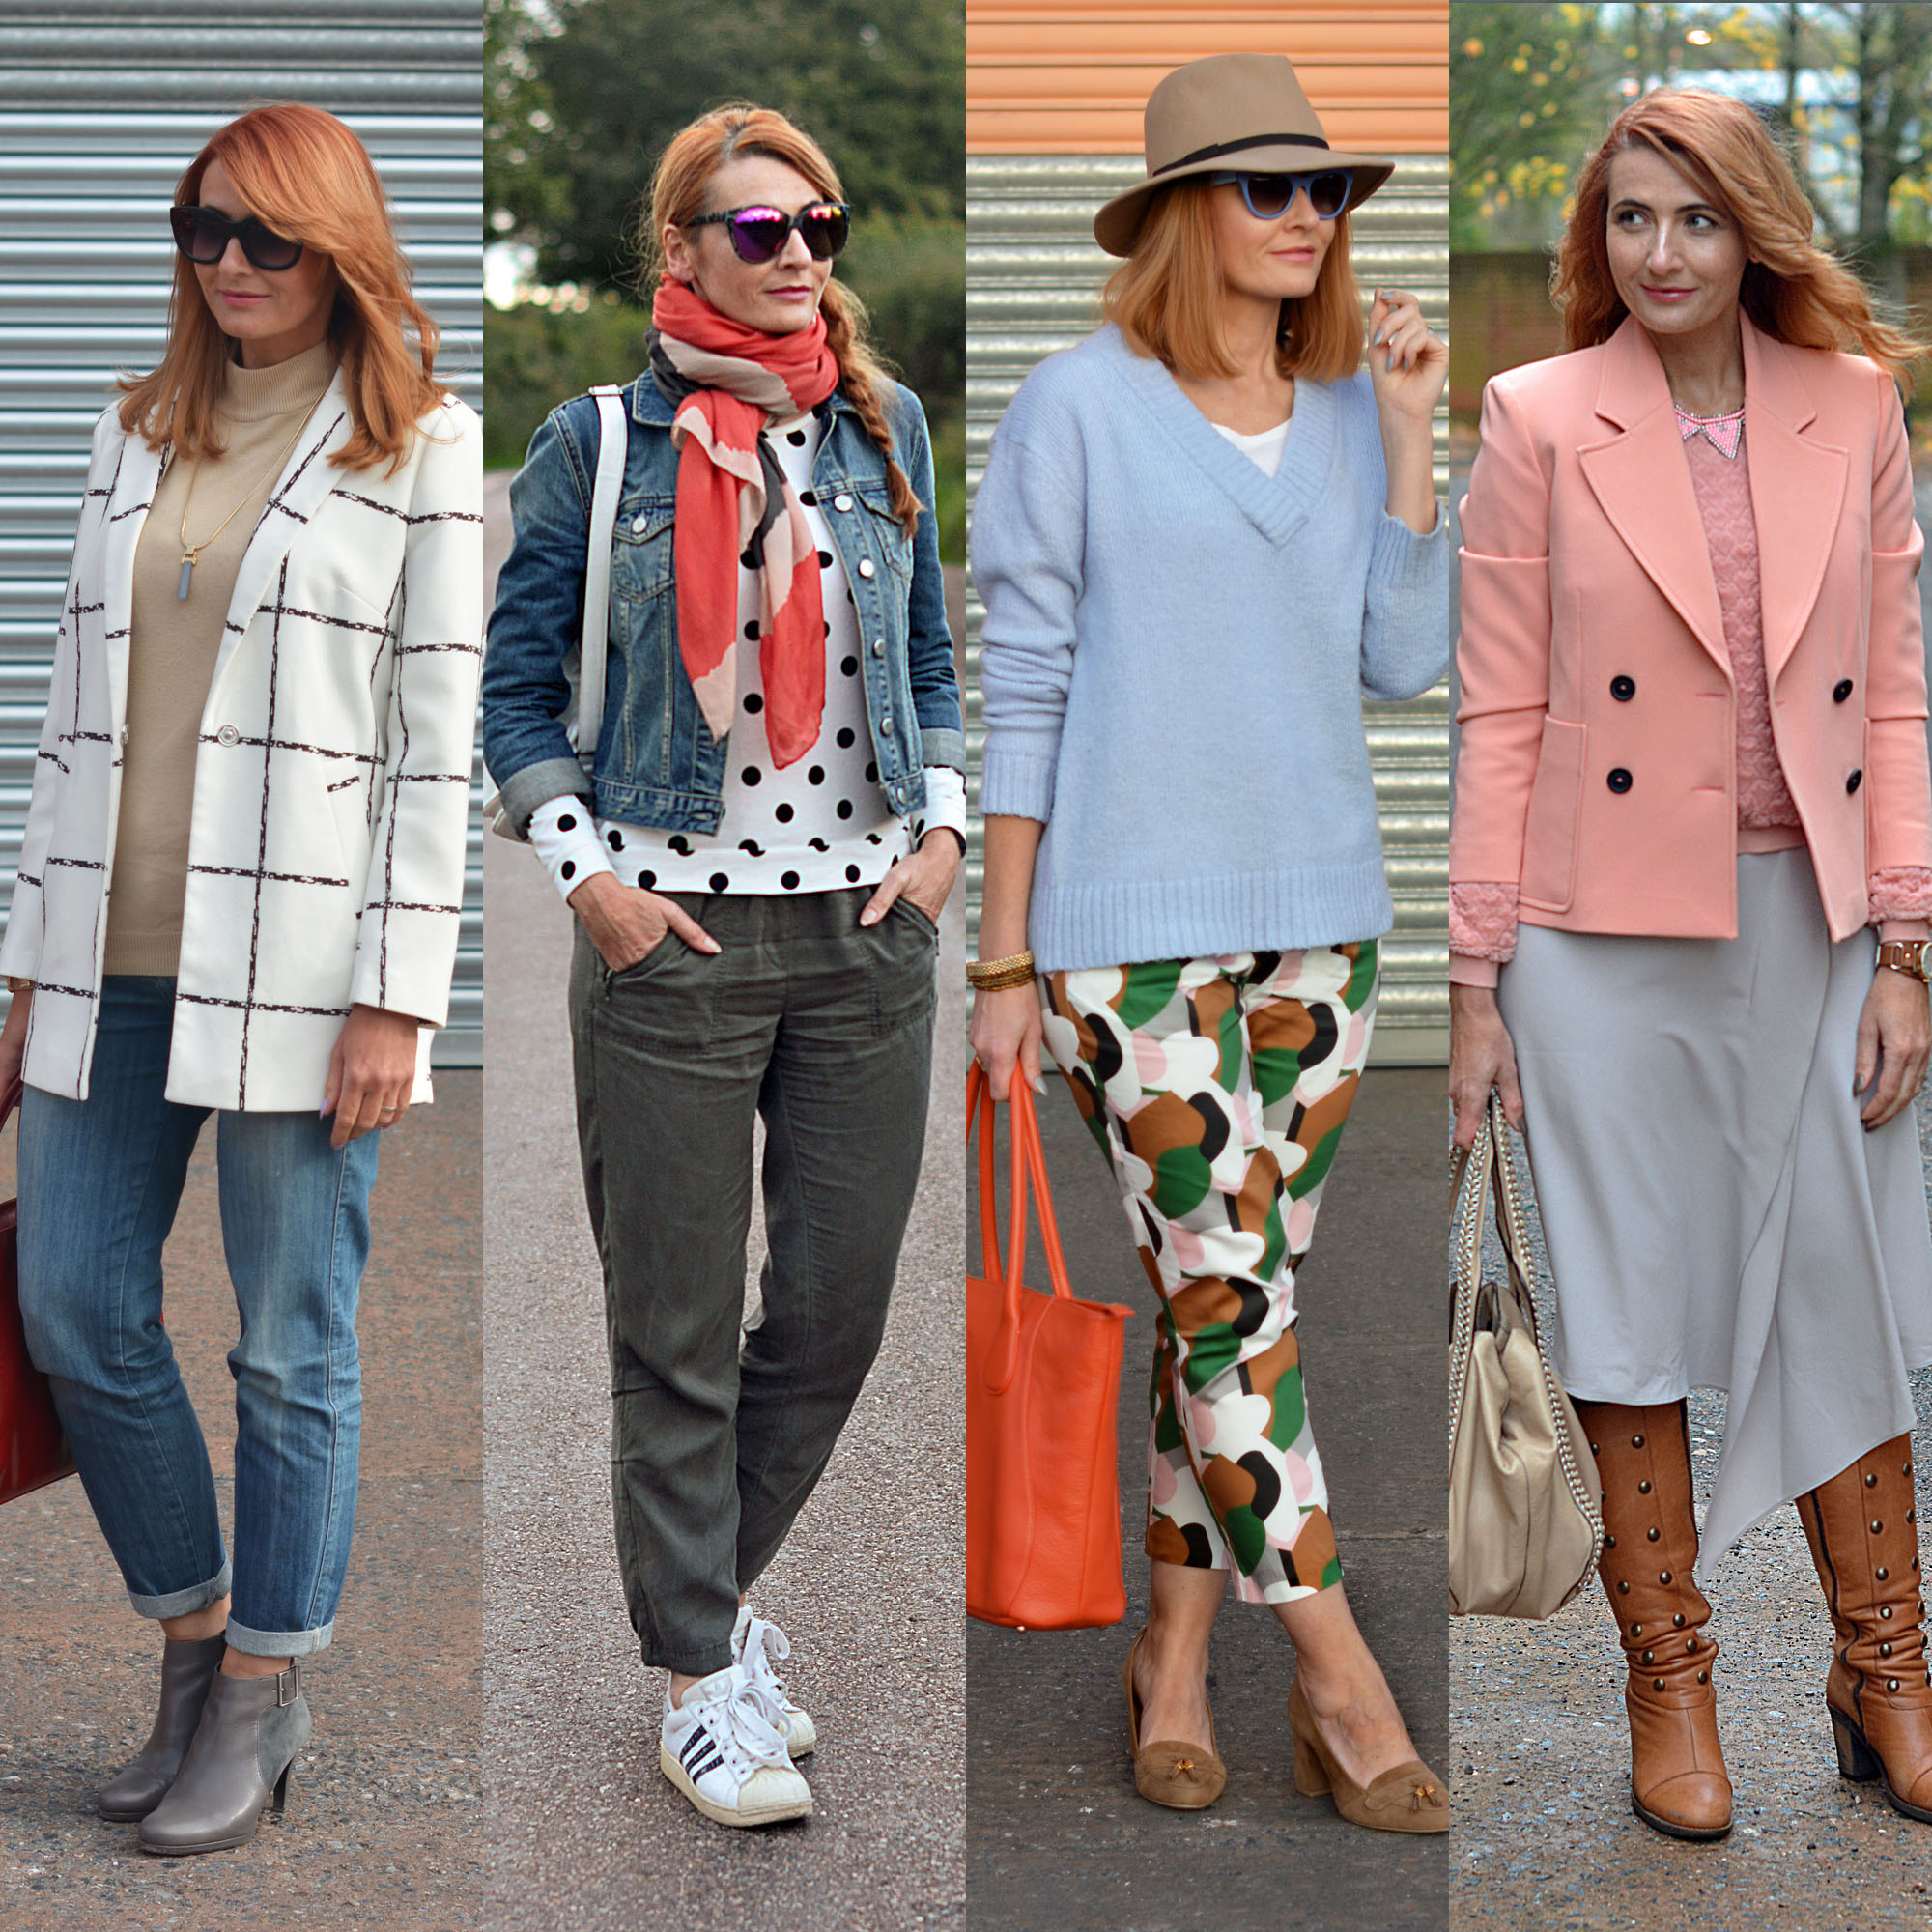 6 Great Autumn (Fall) Outfit Ideas, Over 40 Style - Not Dressed As Lamb